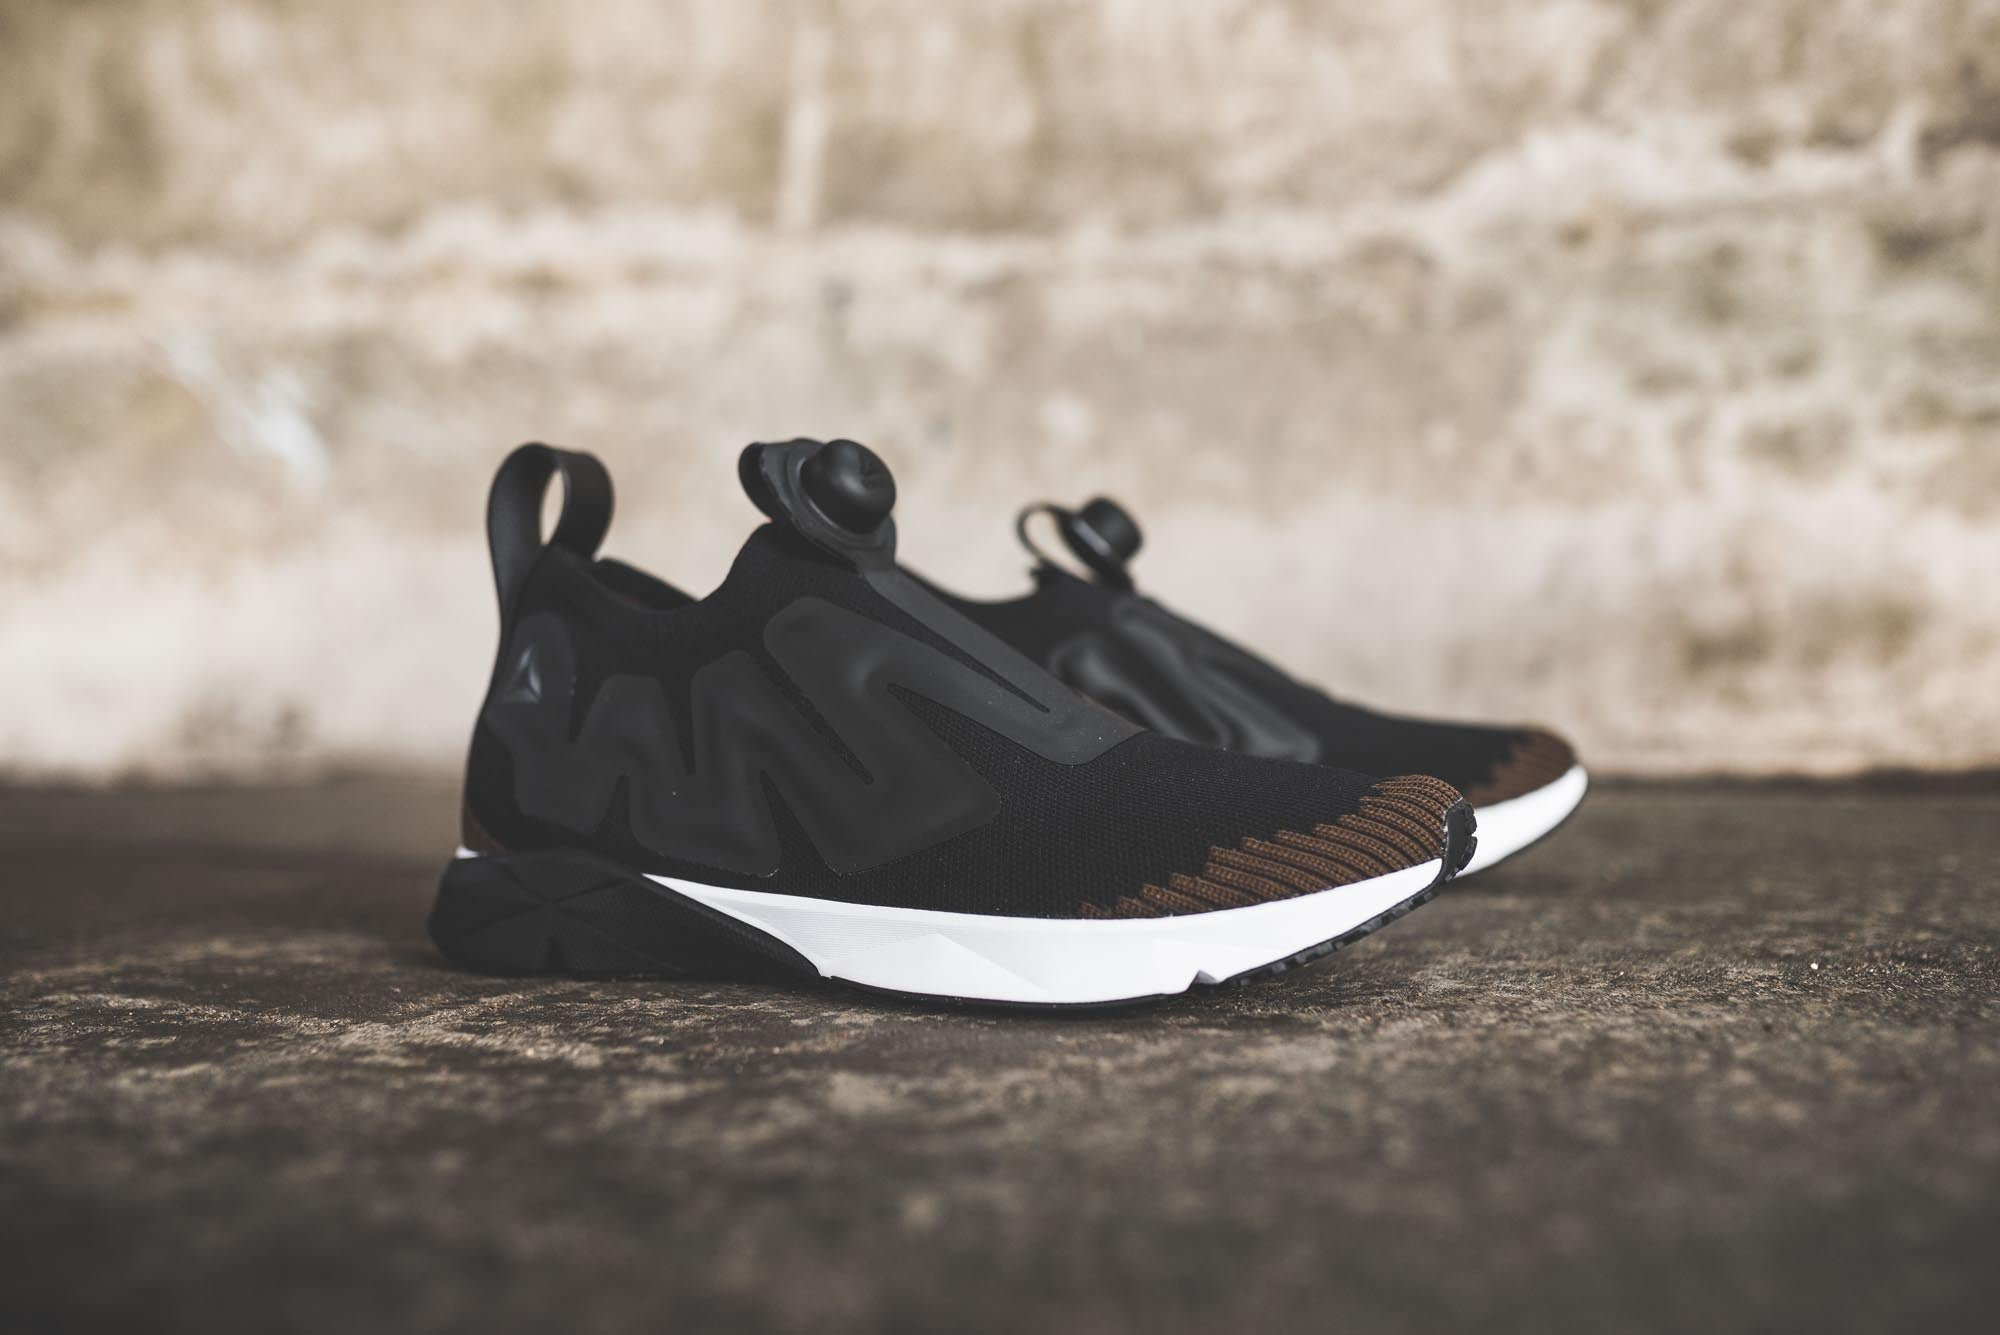 02c4b9b734e ... Men  competitive price e59cd f510f The Reebok Pump Plus Supreme has  received a great reaction since its ...